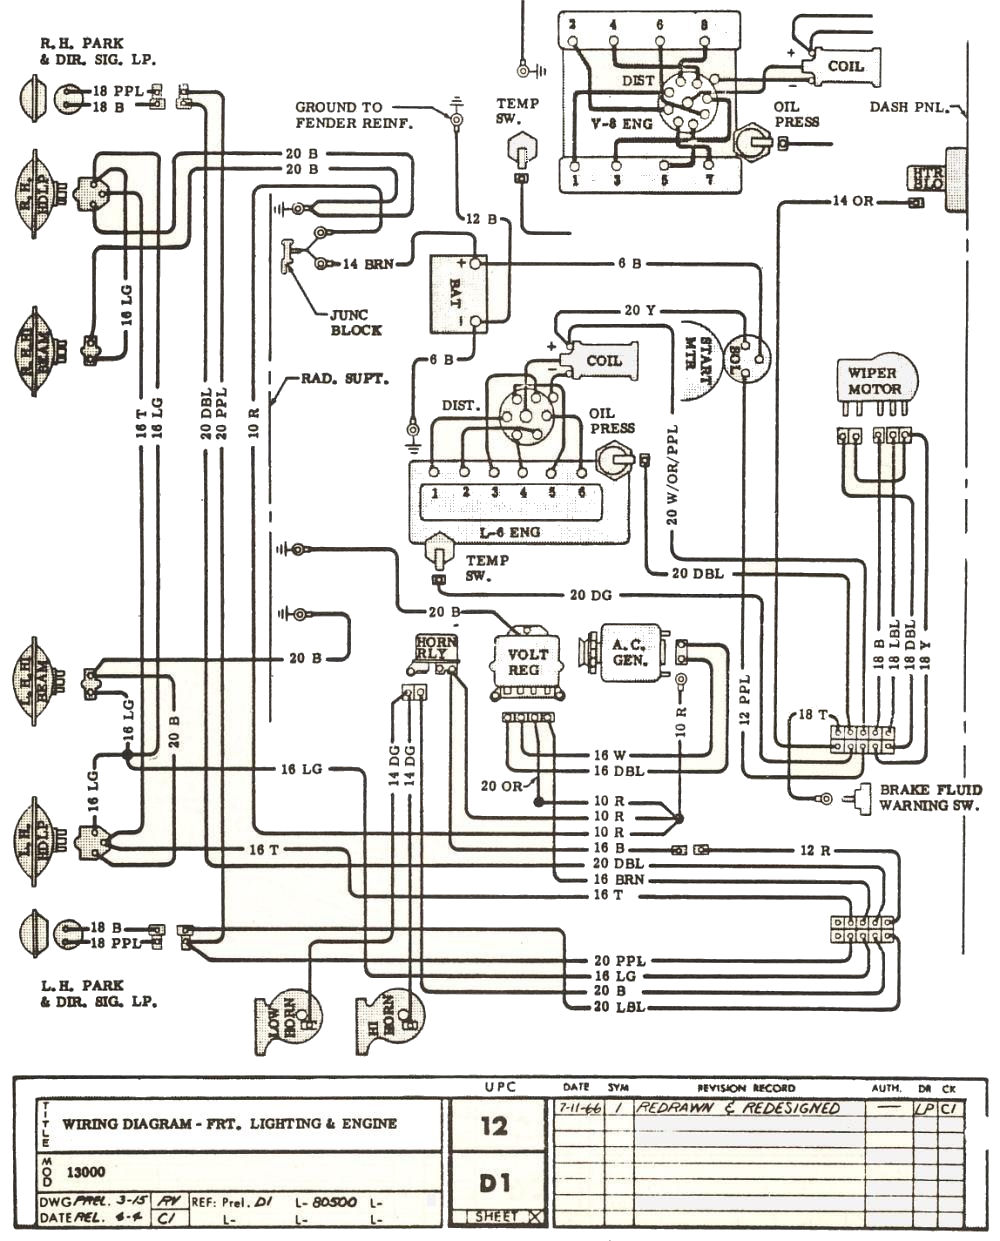 [WRG-5951] 67 Chevelle Dash Wiring Diagram